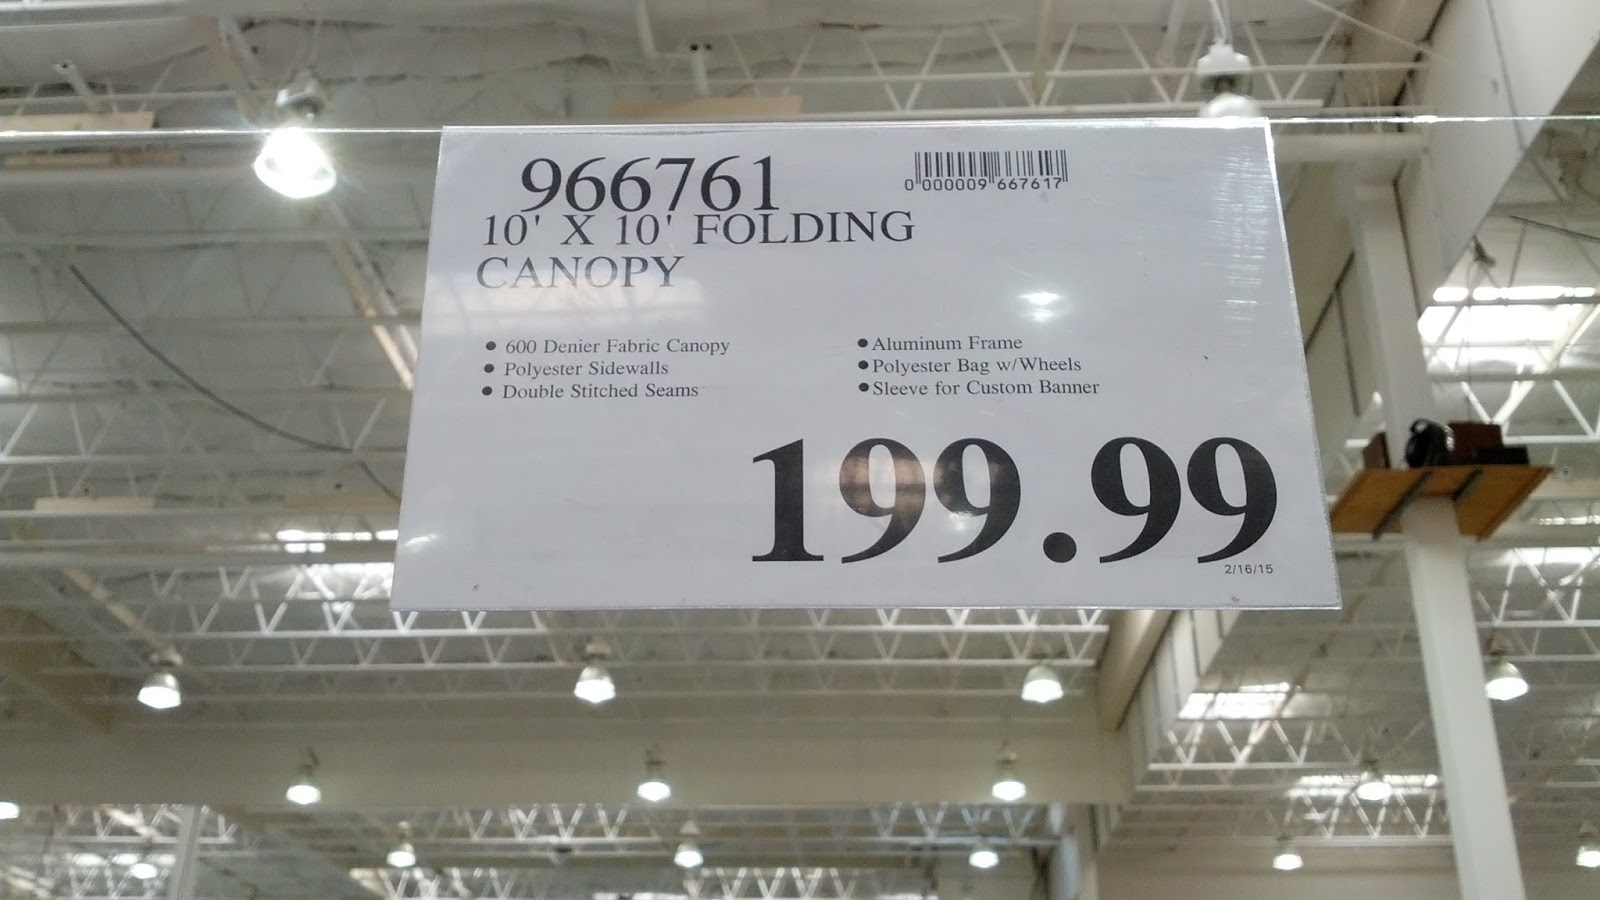 Instant Folding Canopy deal at Costco : costco canopy 10x10 - memphite.com